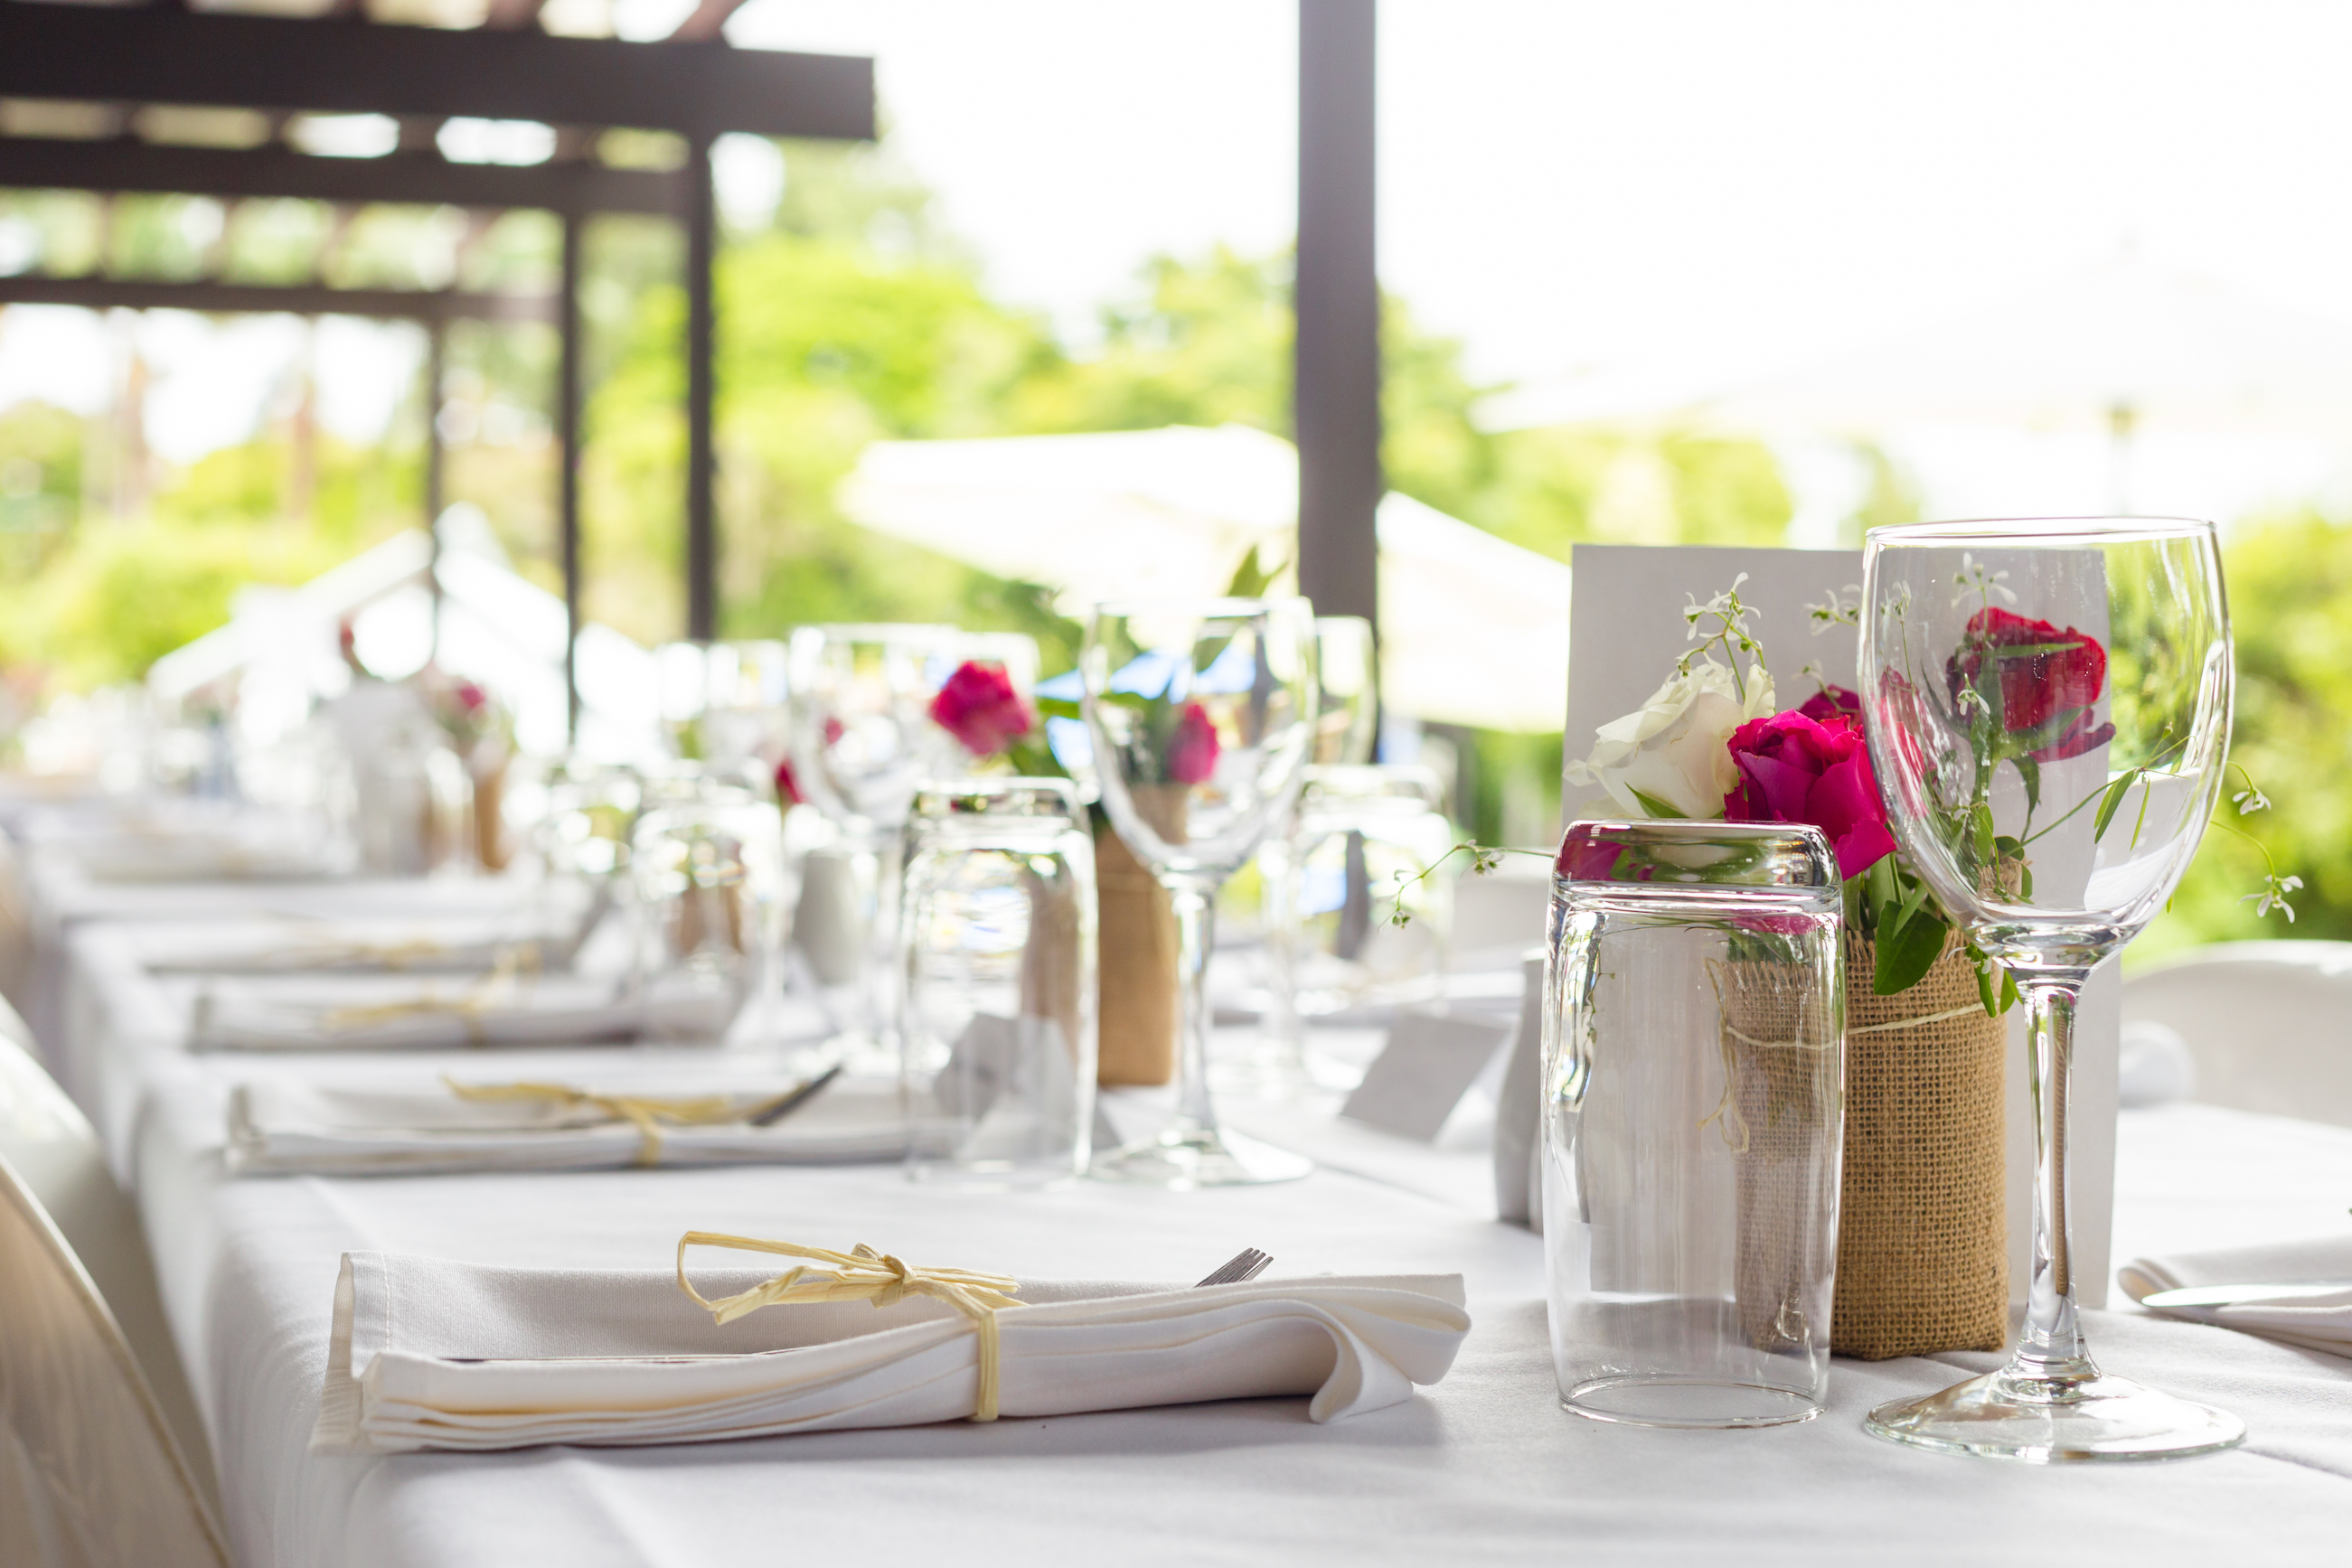 Wedding hire sunshine coast marquee hire wedding tent rentals event hire party tent hire